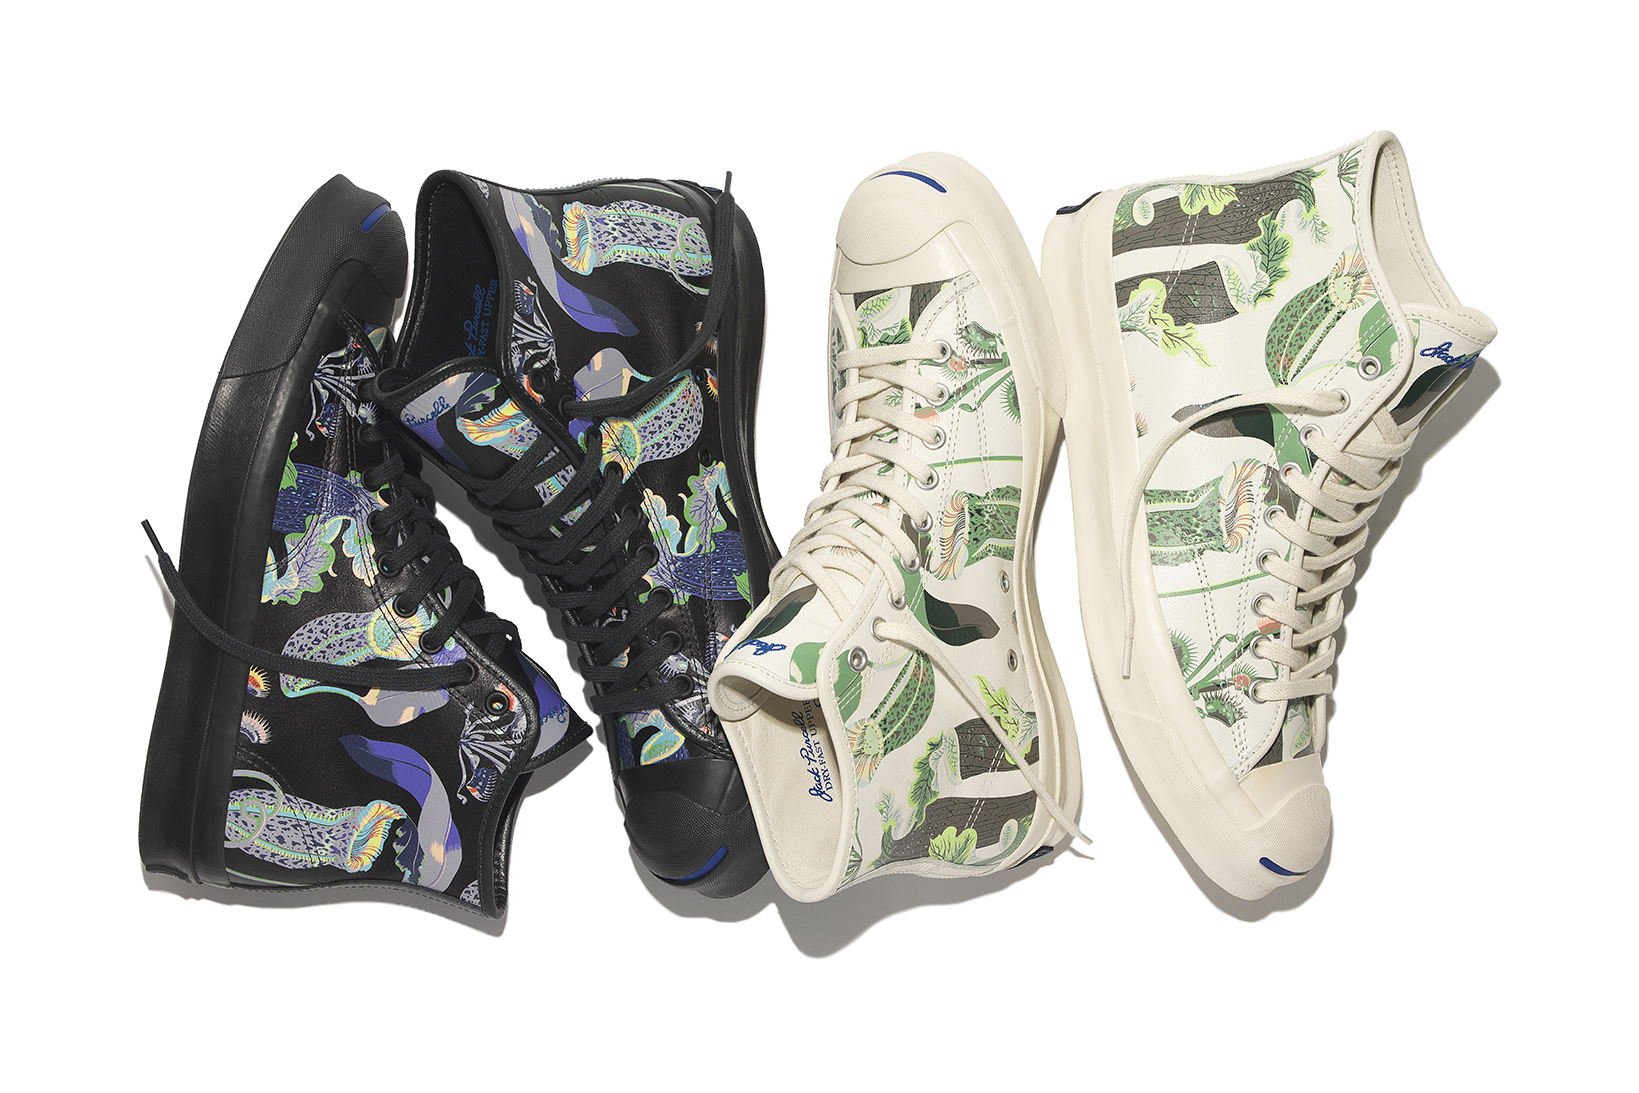 Converse Decorates the Jack Purcell in Carnivorous Botanicals